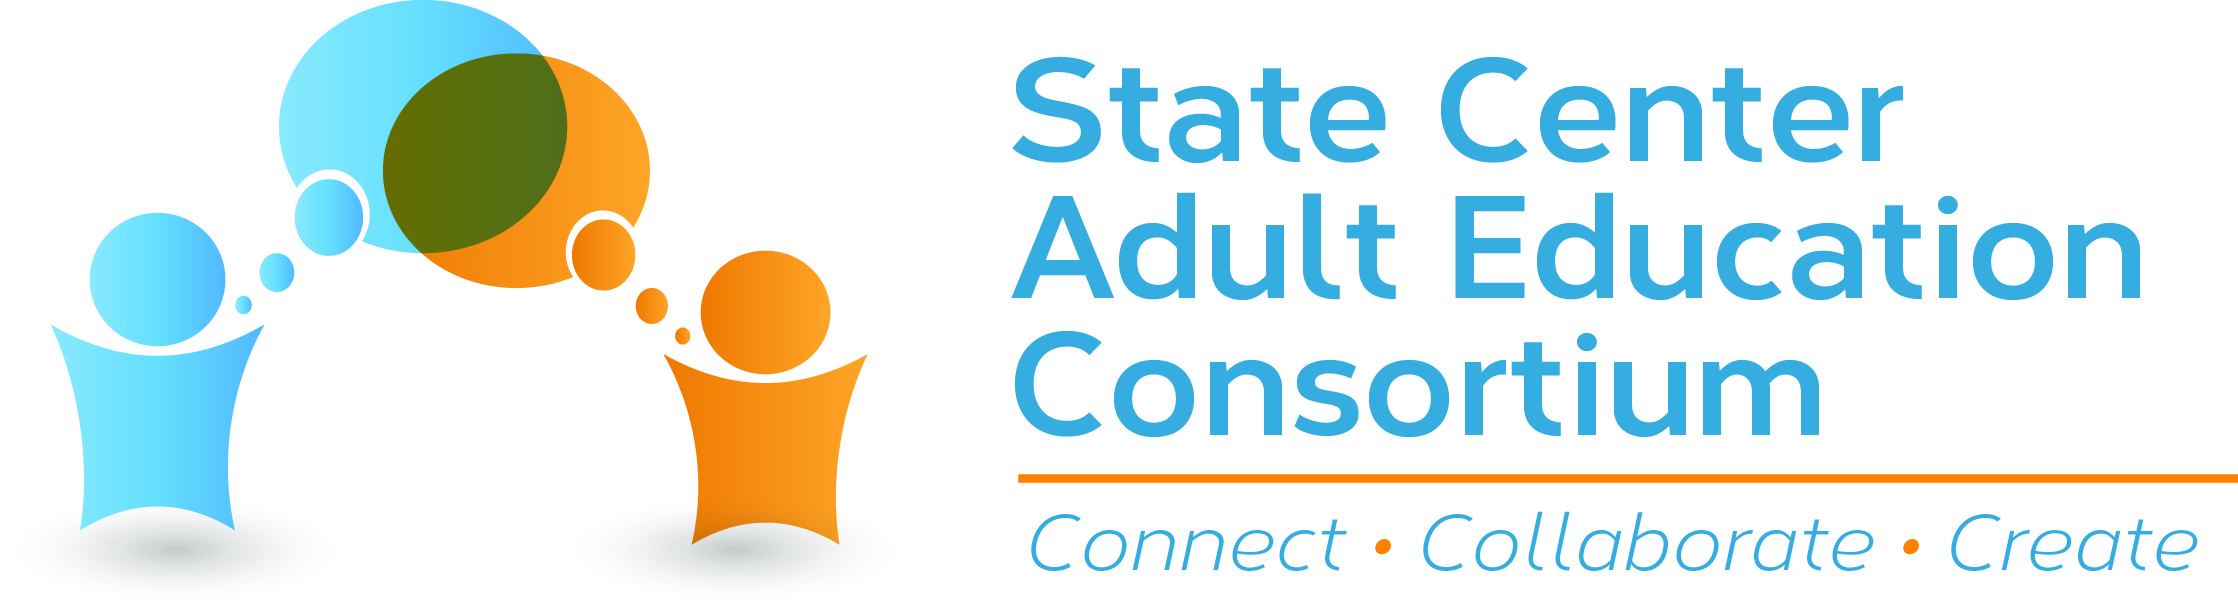 State Center Adult Education Consortium Logo